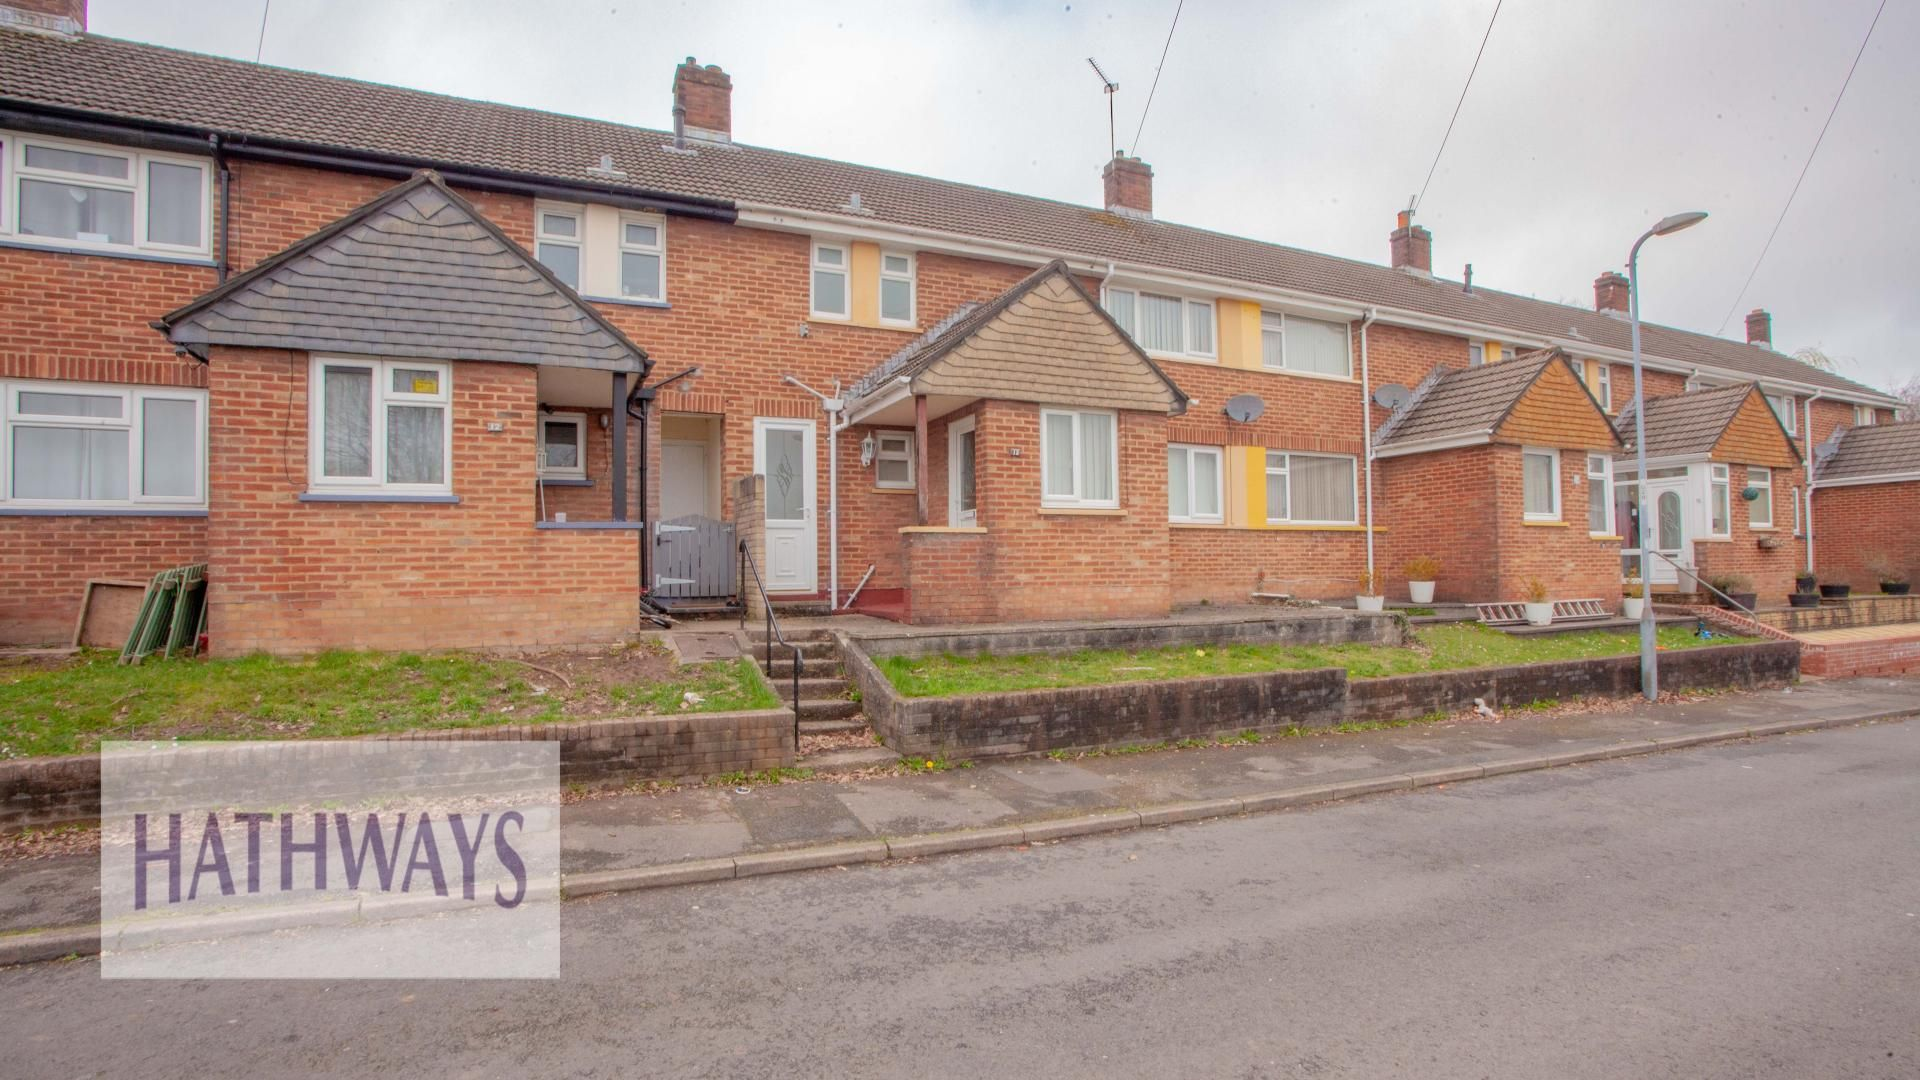 3 bed house for sale in Ashgrove Close, NP4